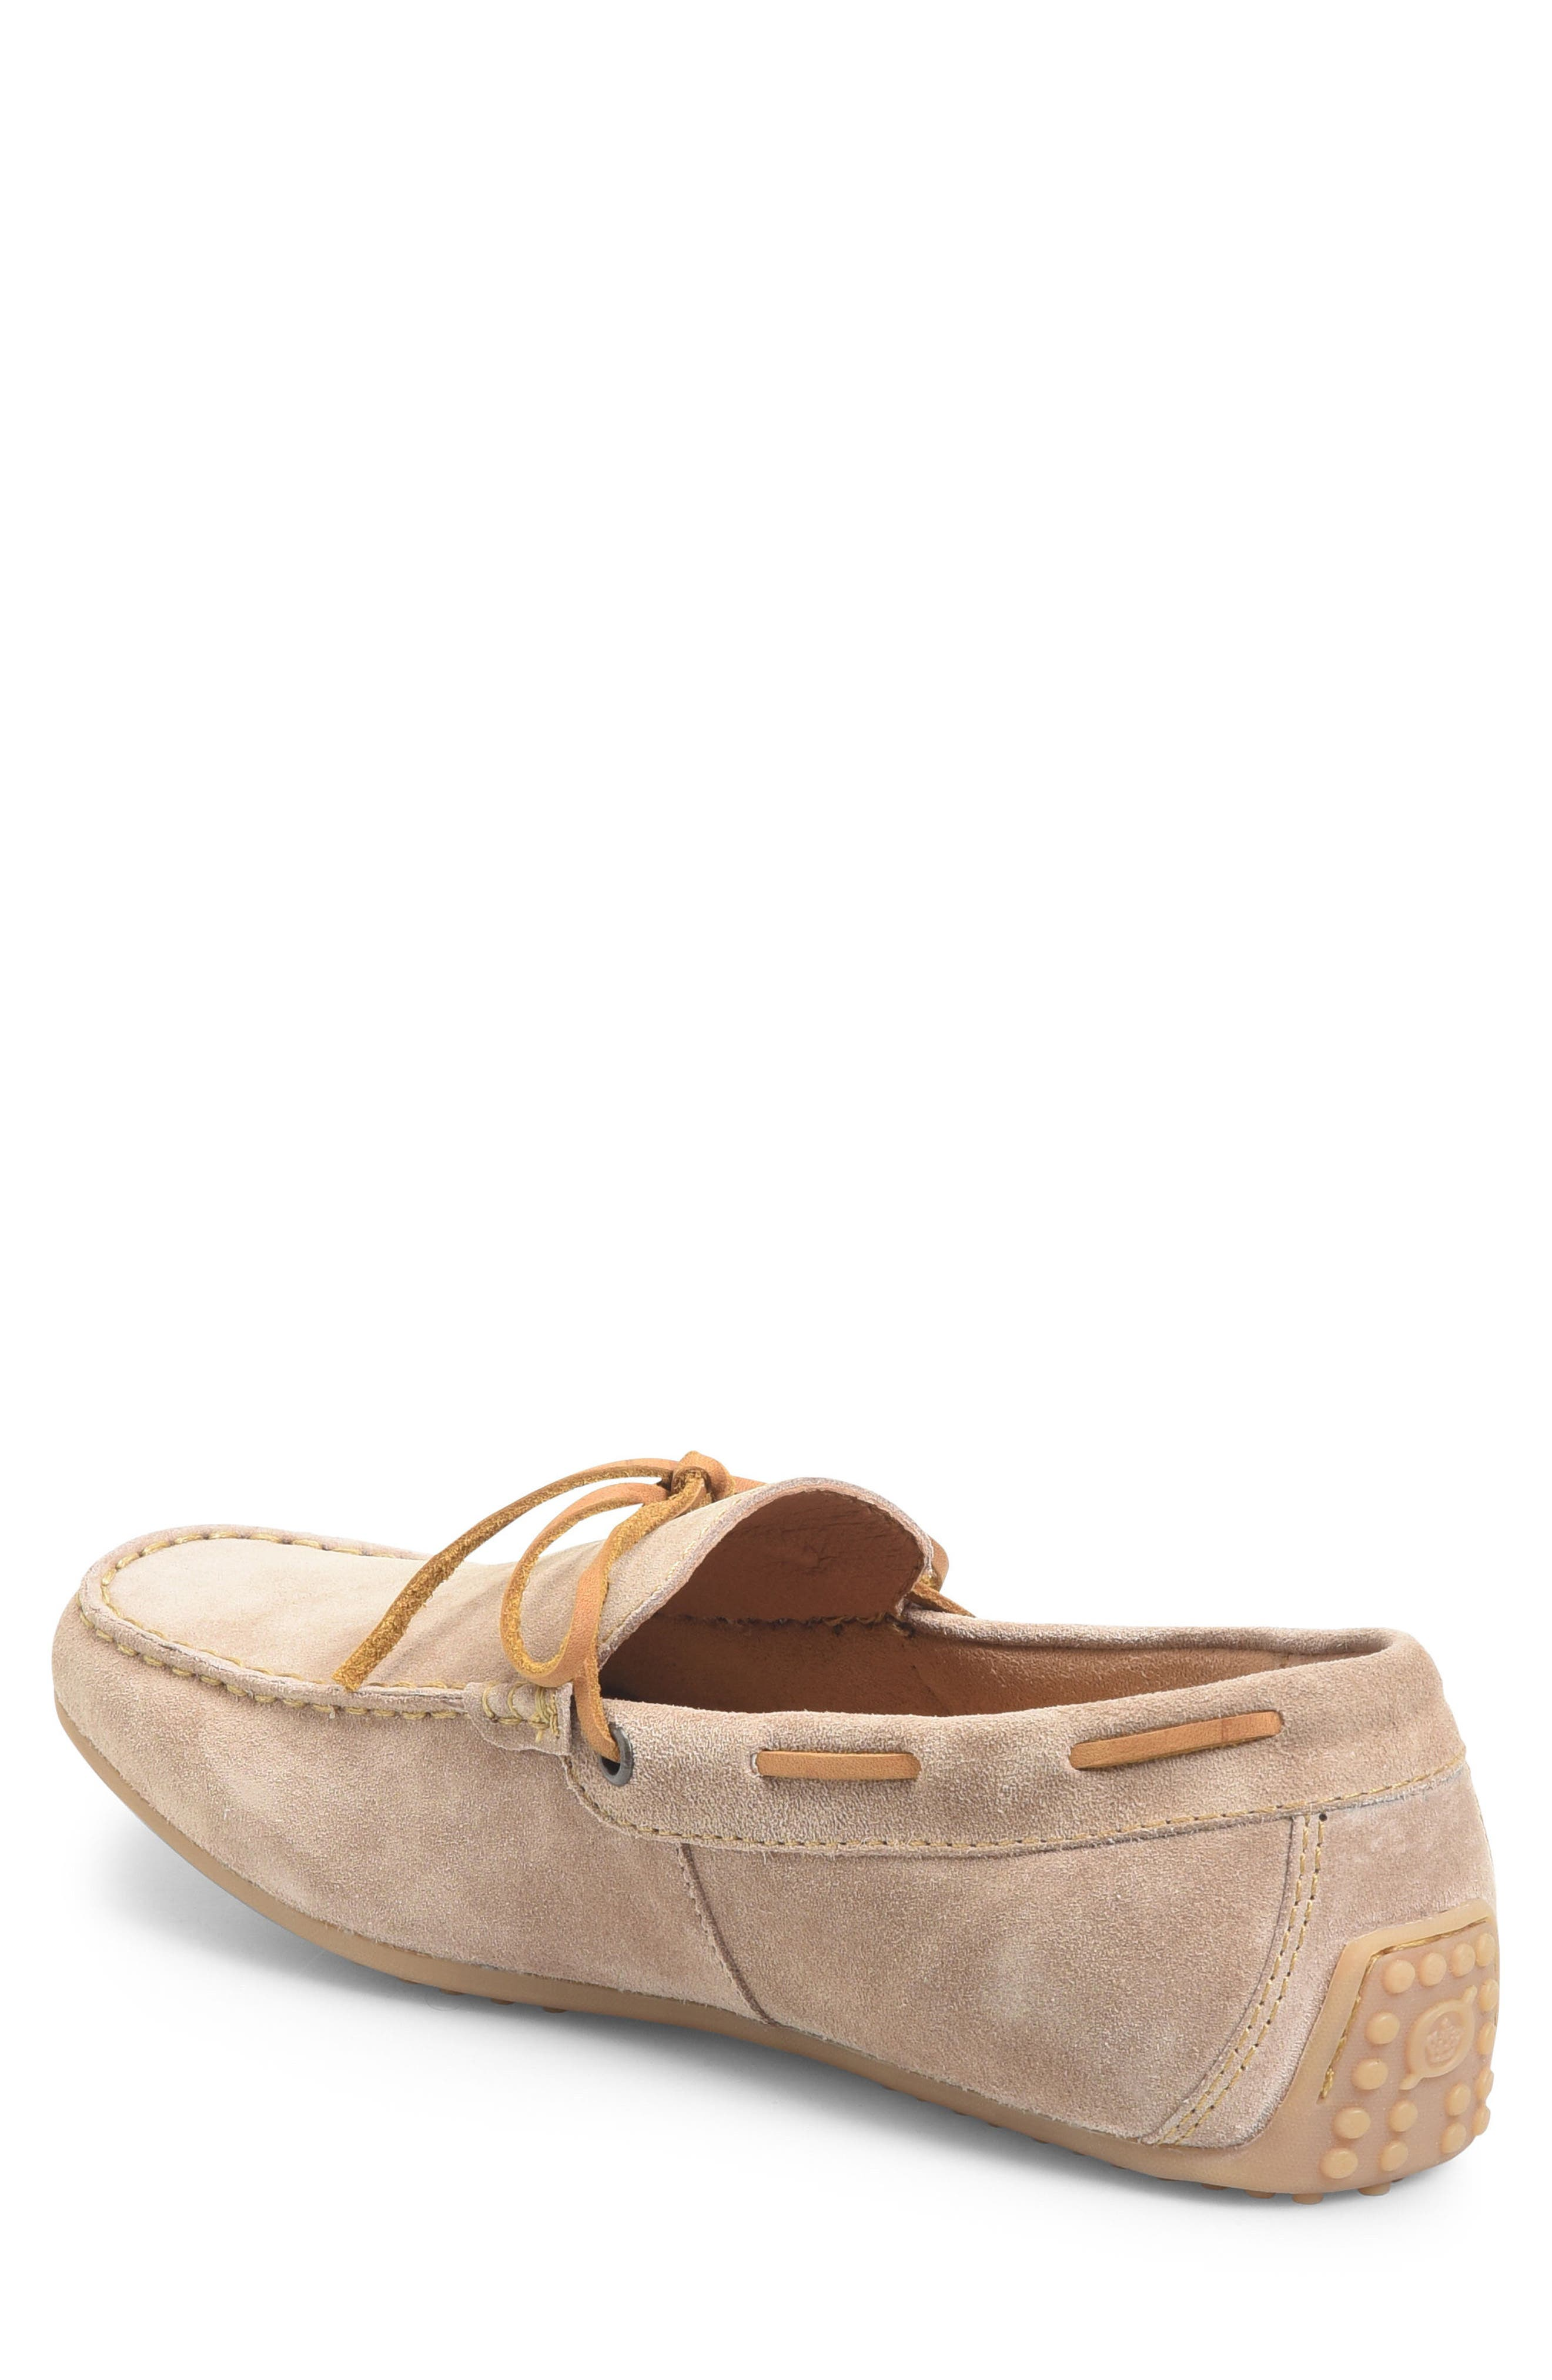 Virgo Driving Shoe,                             Alternate thumbnail 2, color,                             Taupe Suede